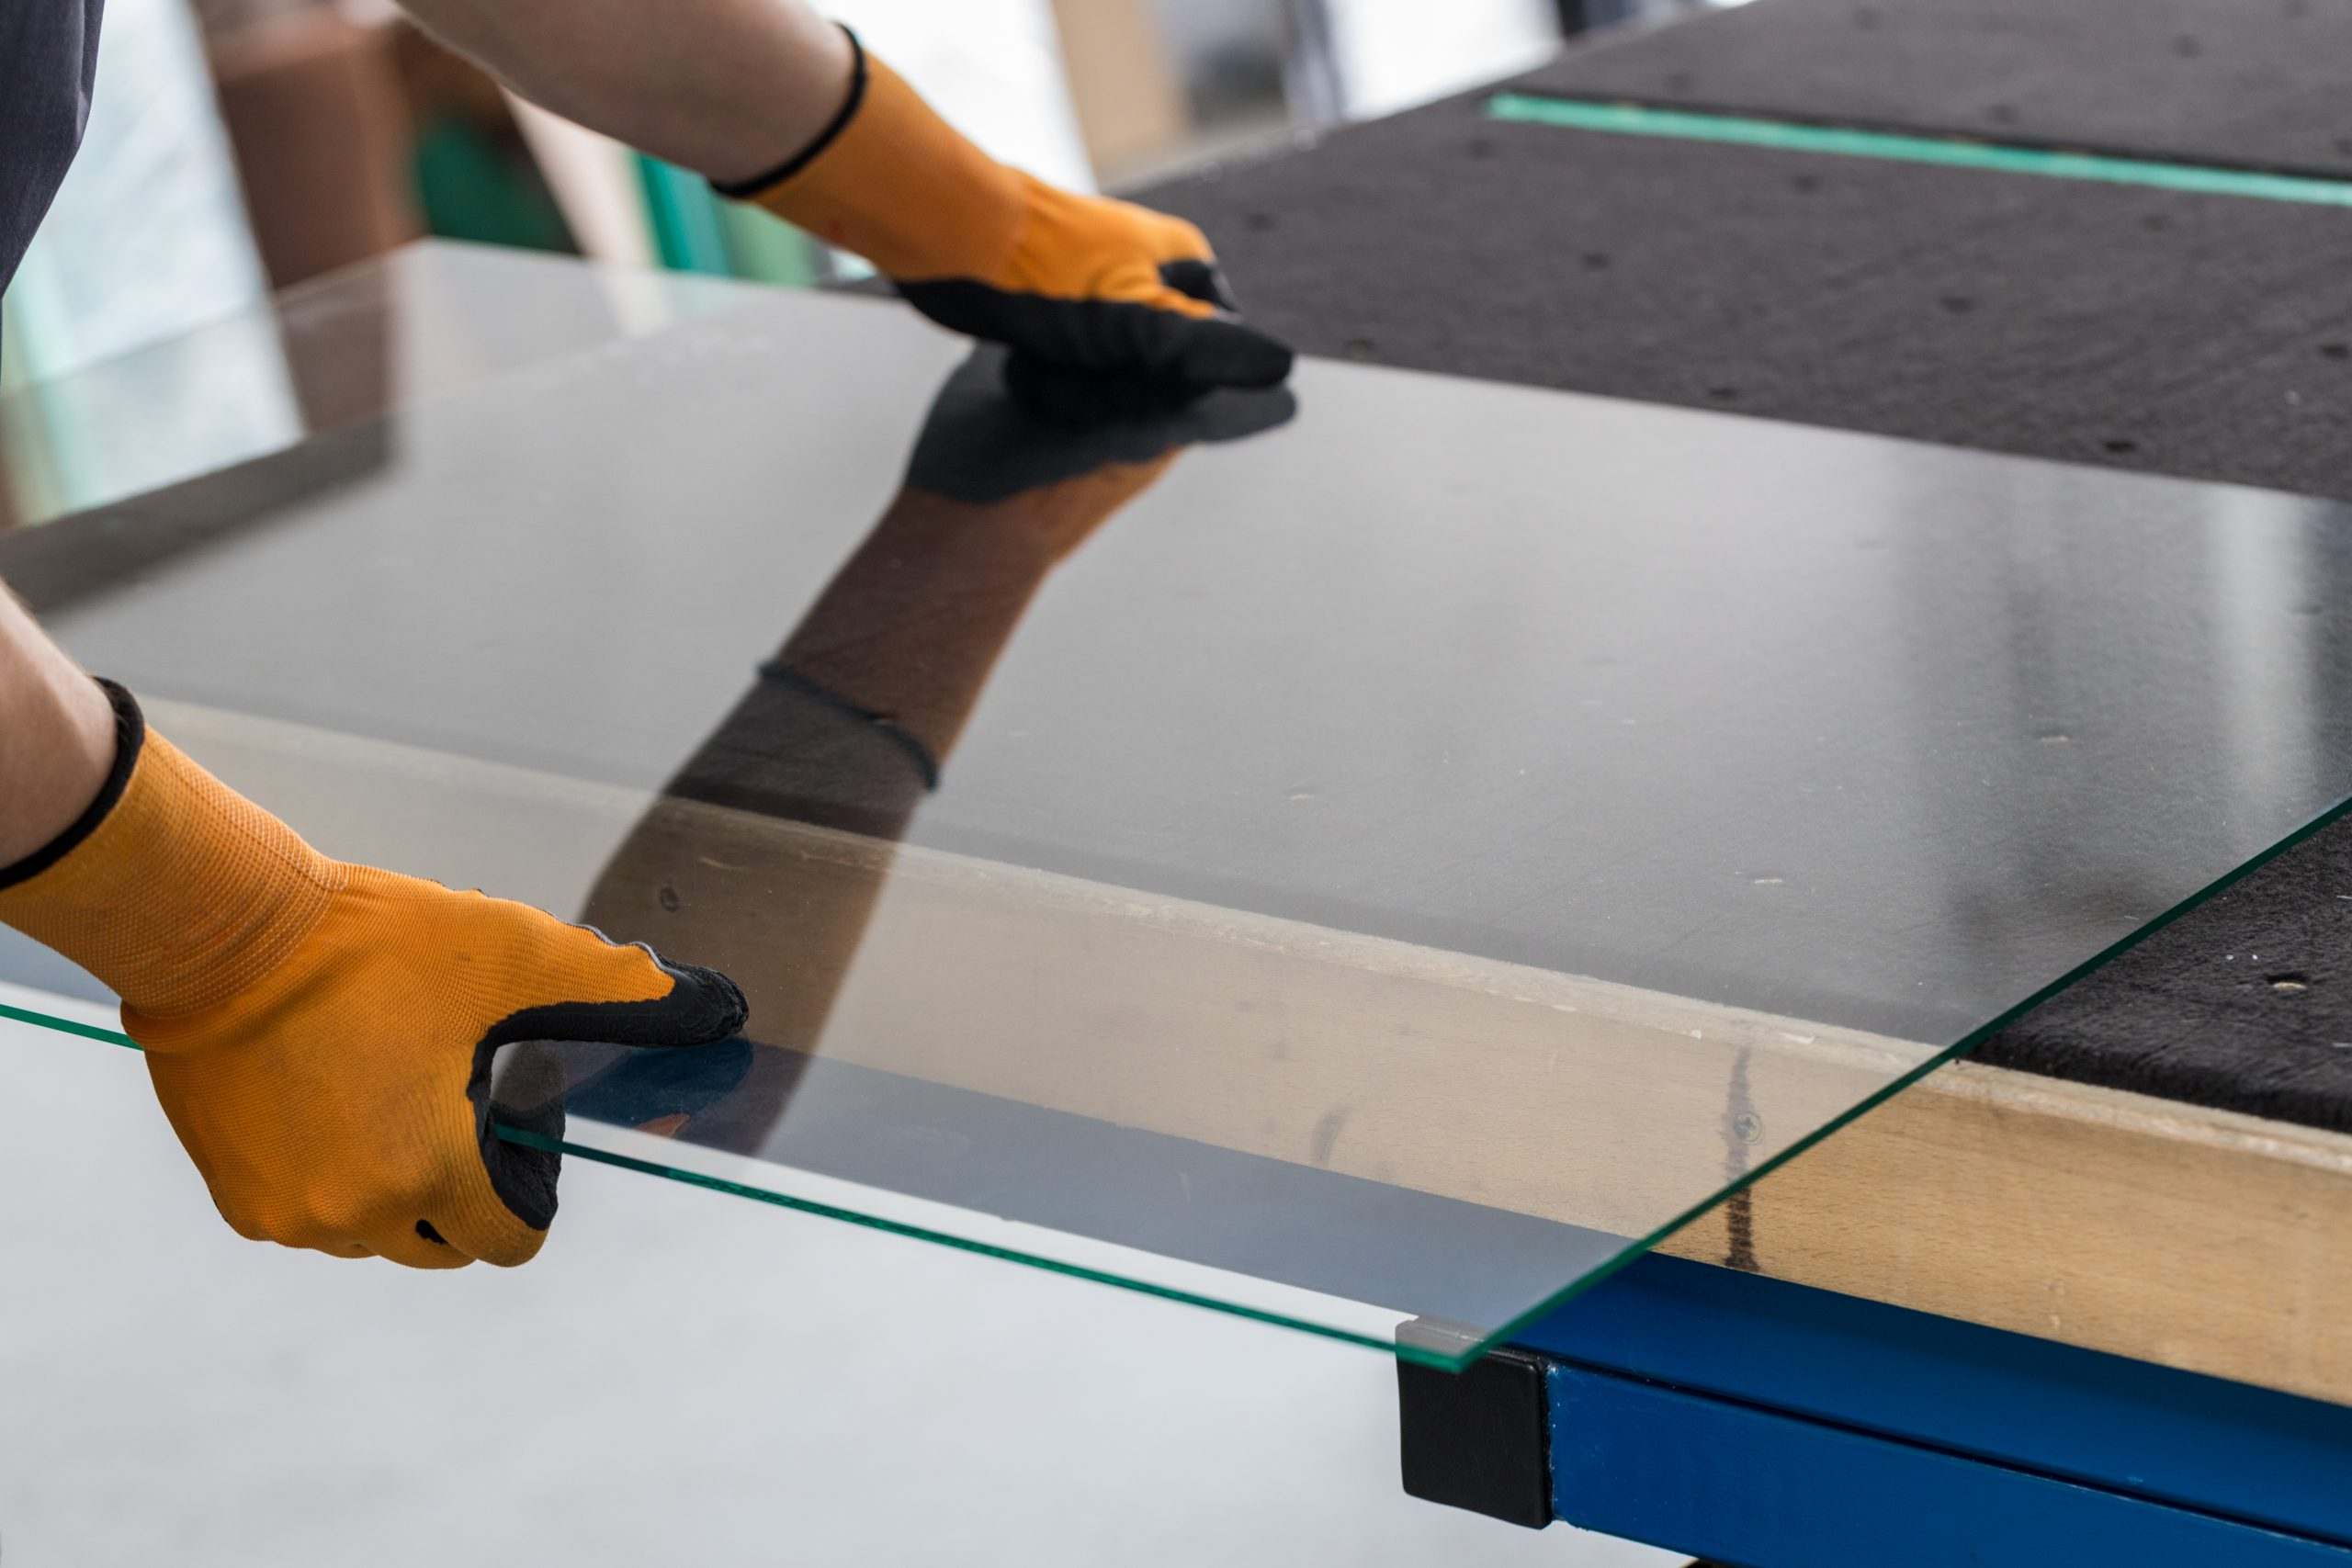 Glass factory, Glazier lifting that table glass